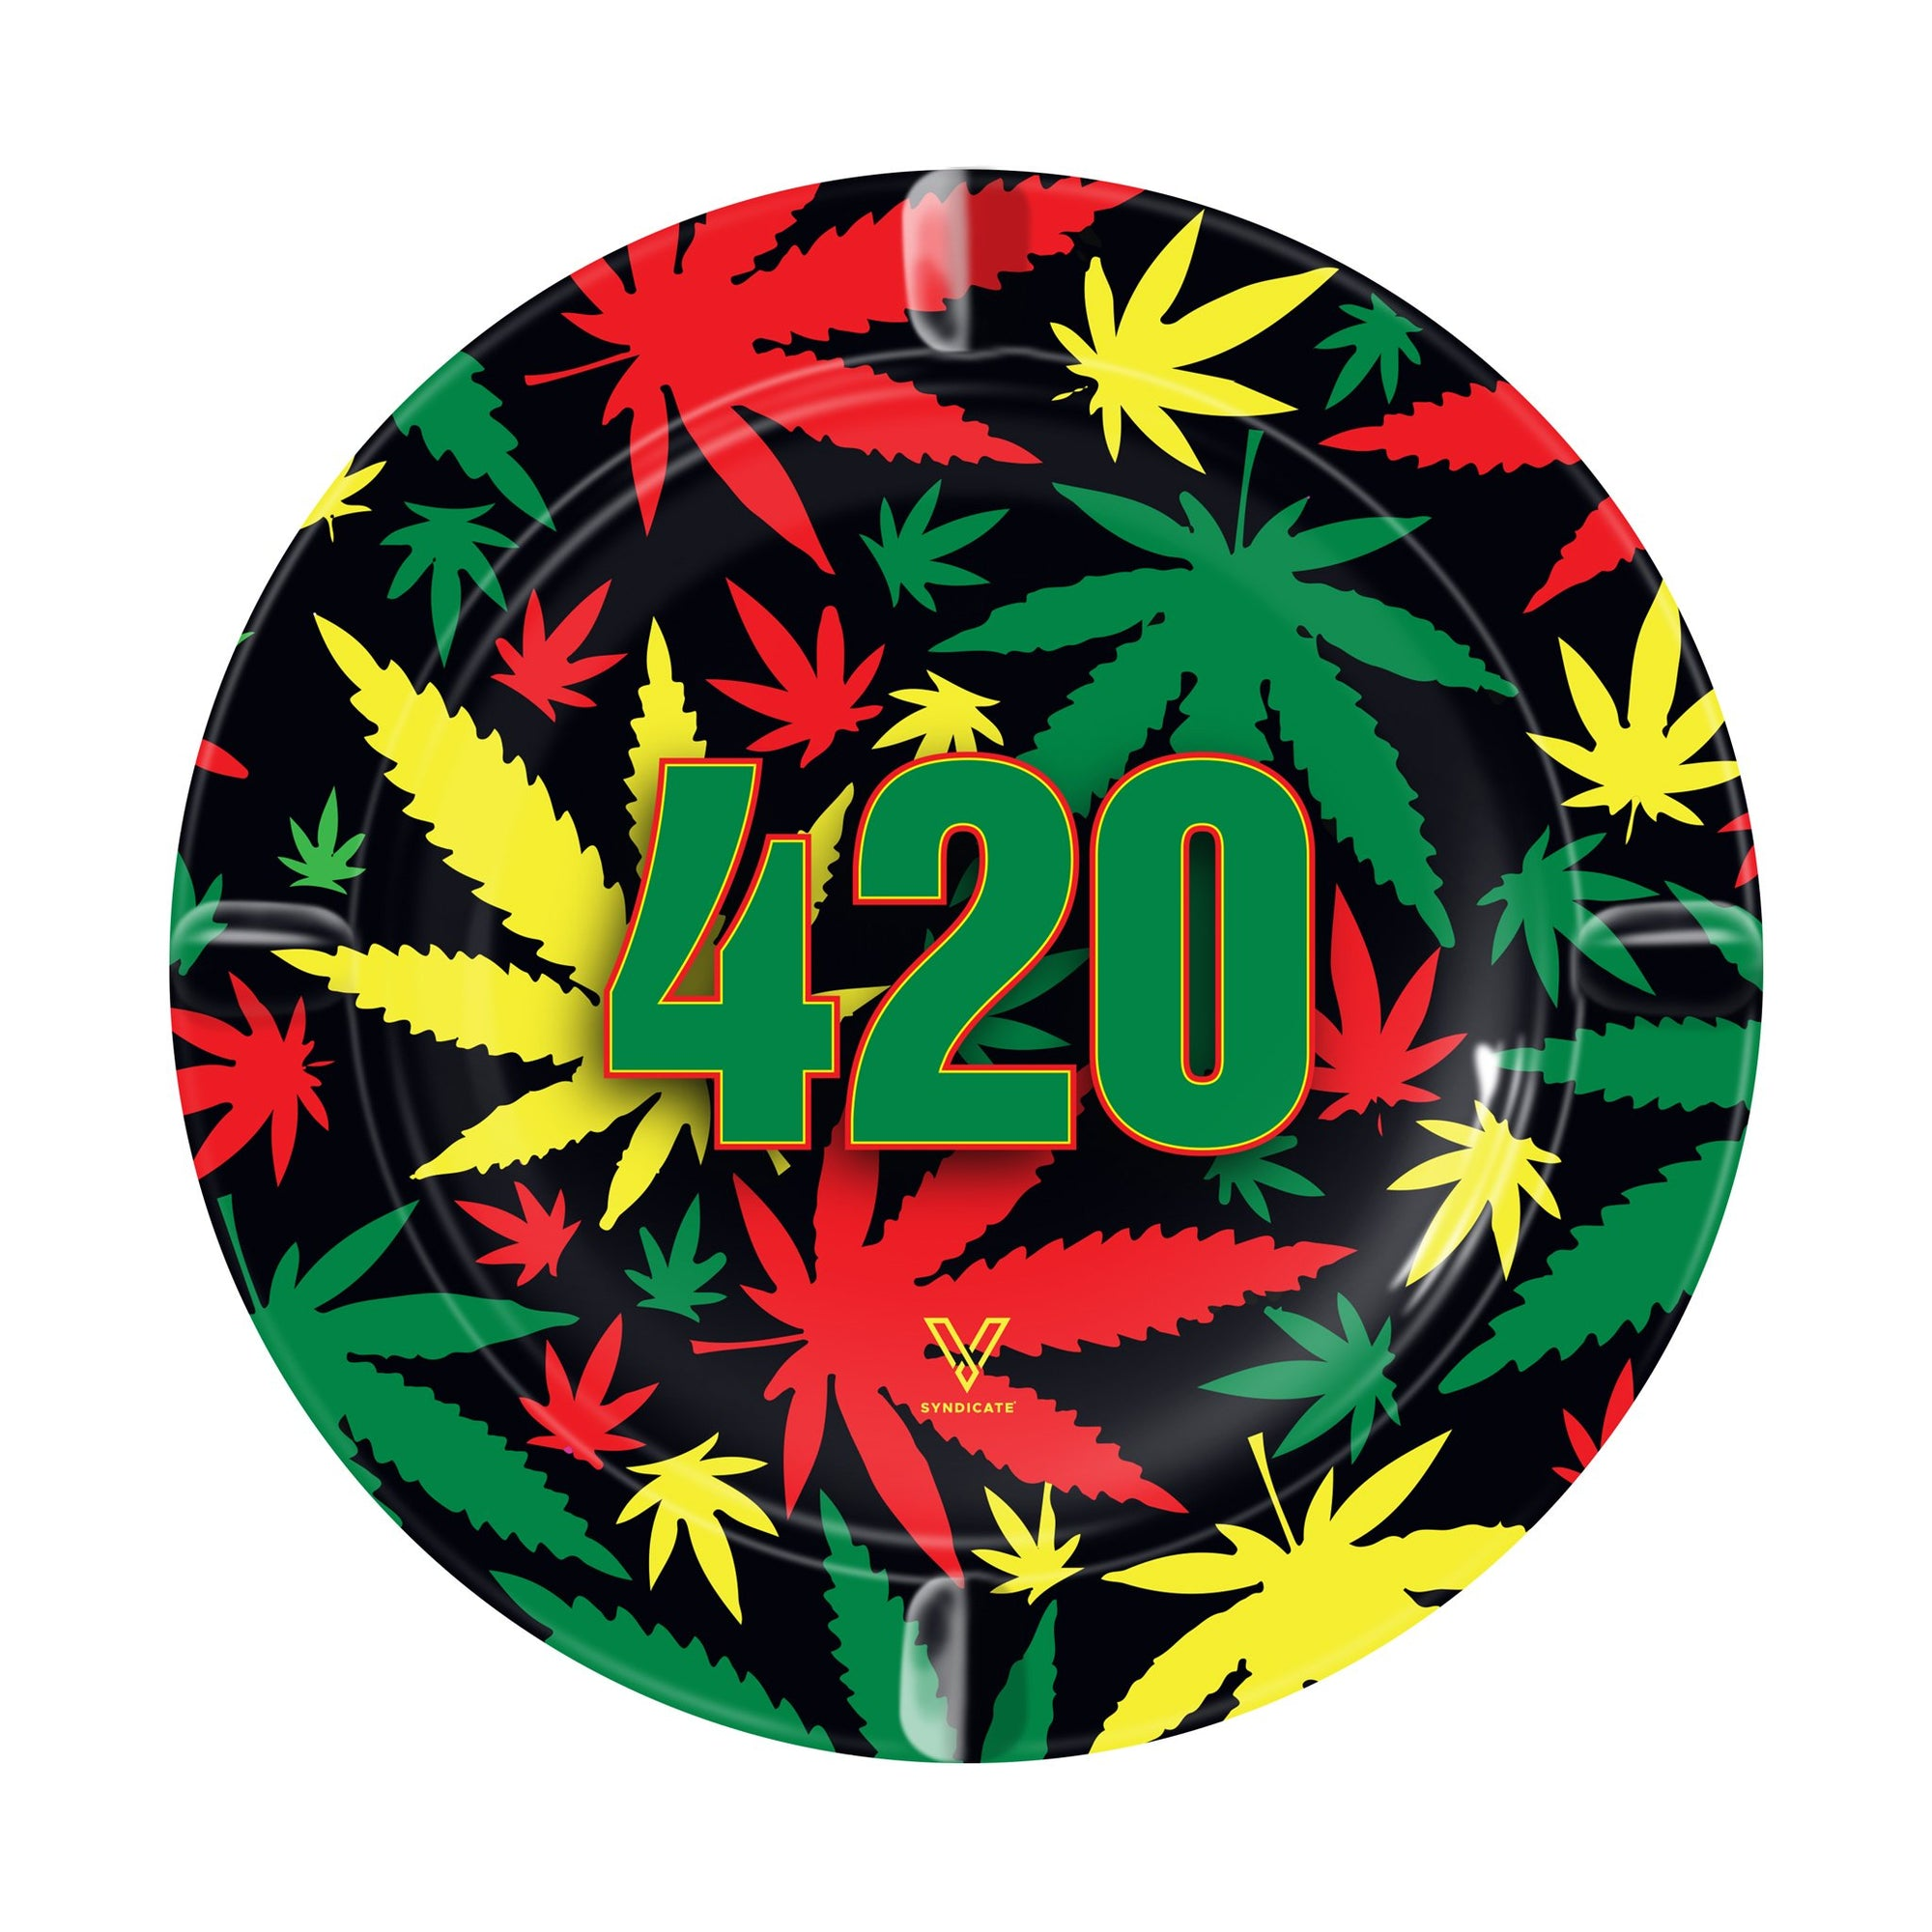 Upright shot 5 inch V Syndicate round metal ashtray rasta green yellow orange weed leaves design black background 420 center